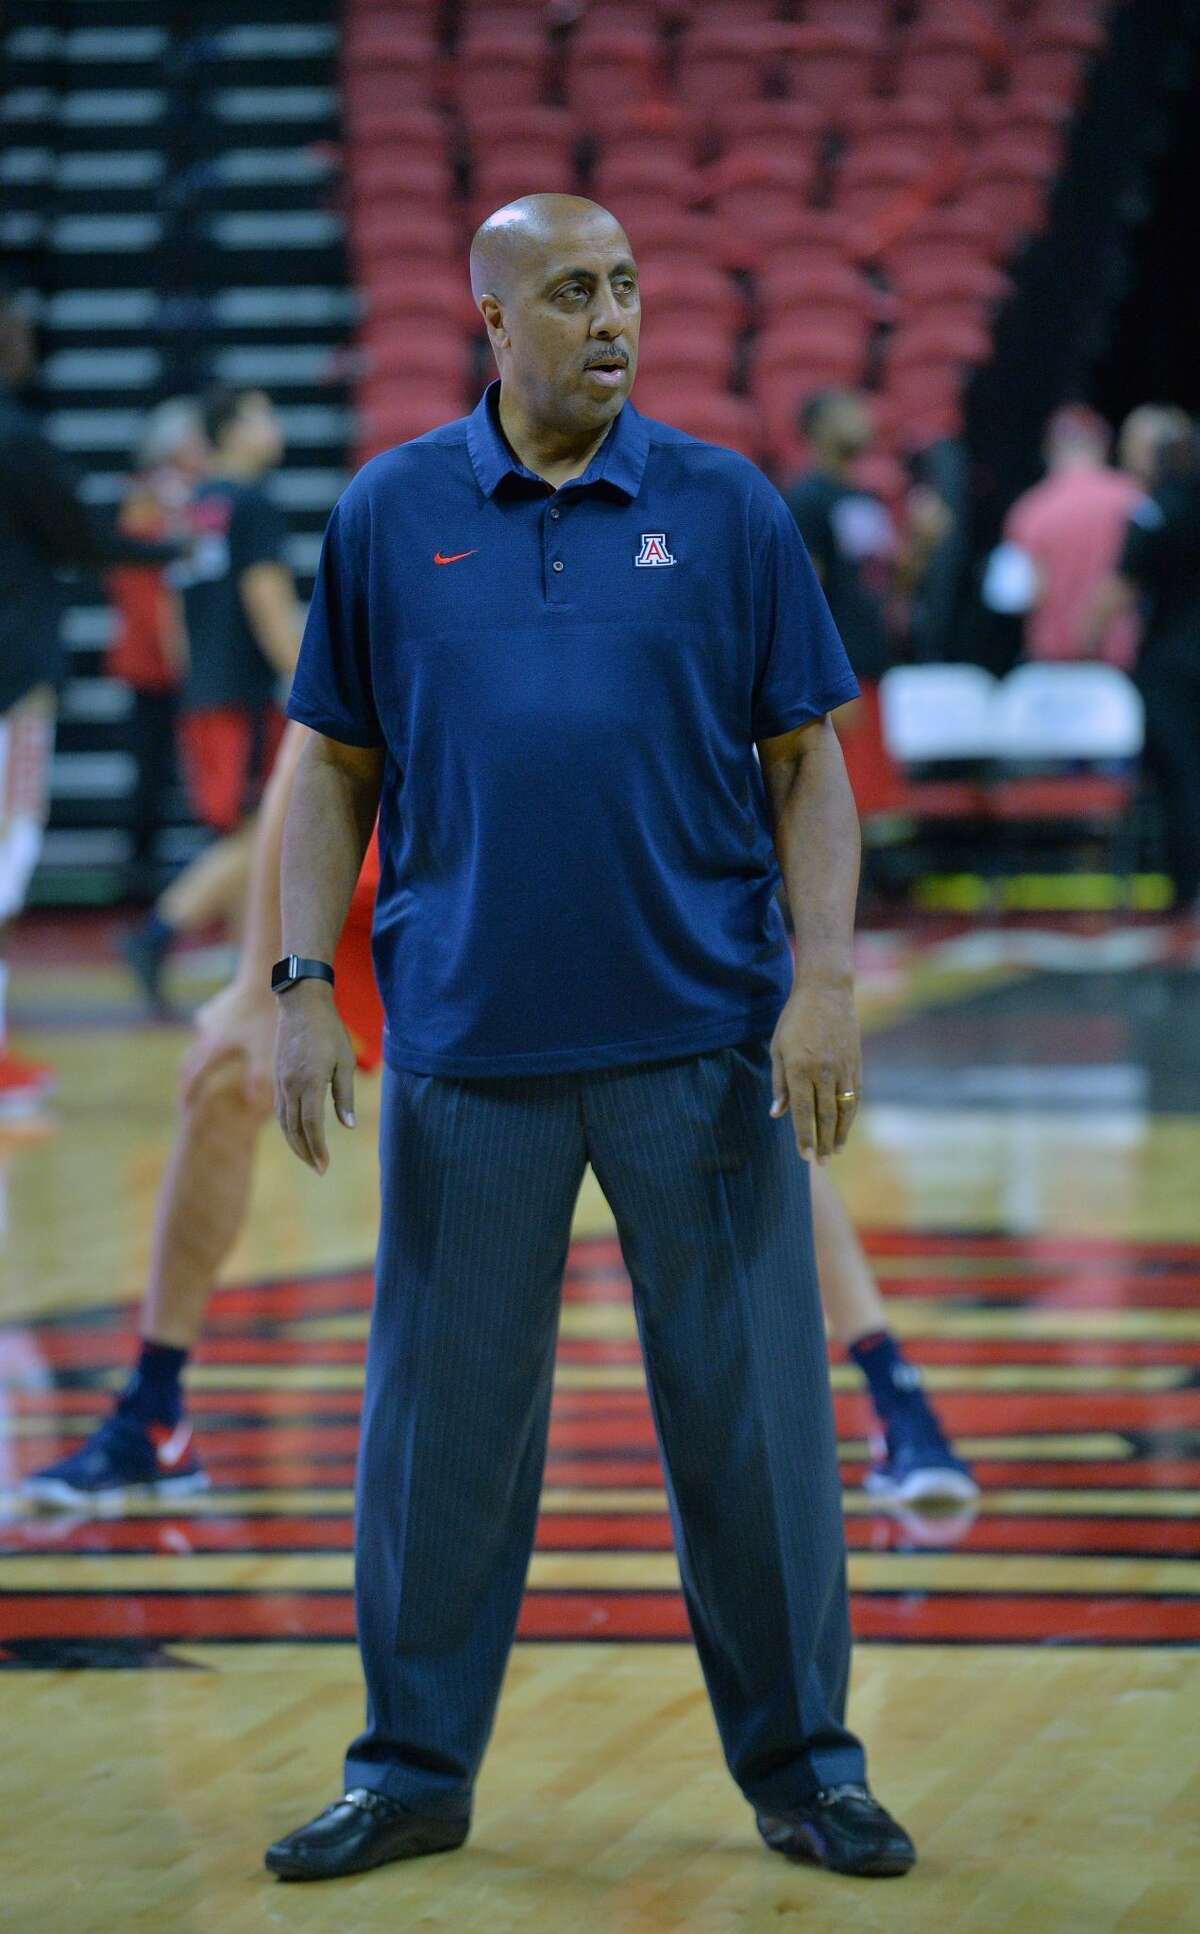 LAS VEGAS, NV - DECEMBER 02: Associate head coach Lorenzo Romar of the Arizona Wildcats stands on the court during warmups before his team's game against the UNLV Rebels at the Thomas & Mack Center on December 2, 2017 in Las Vegas, Nevada. (Photo by Sam Wasson/Getty Images)